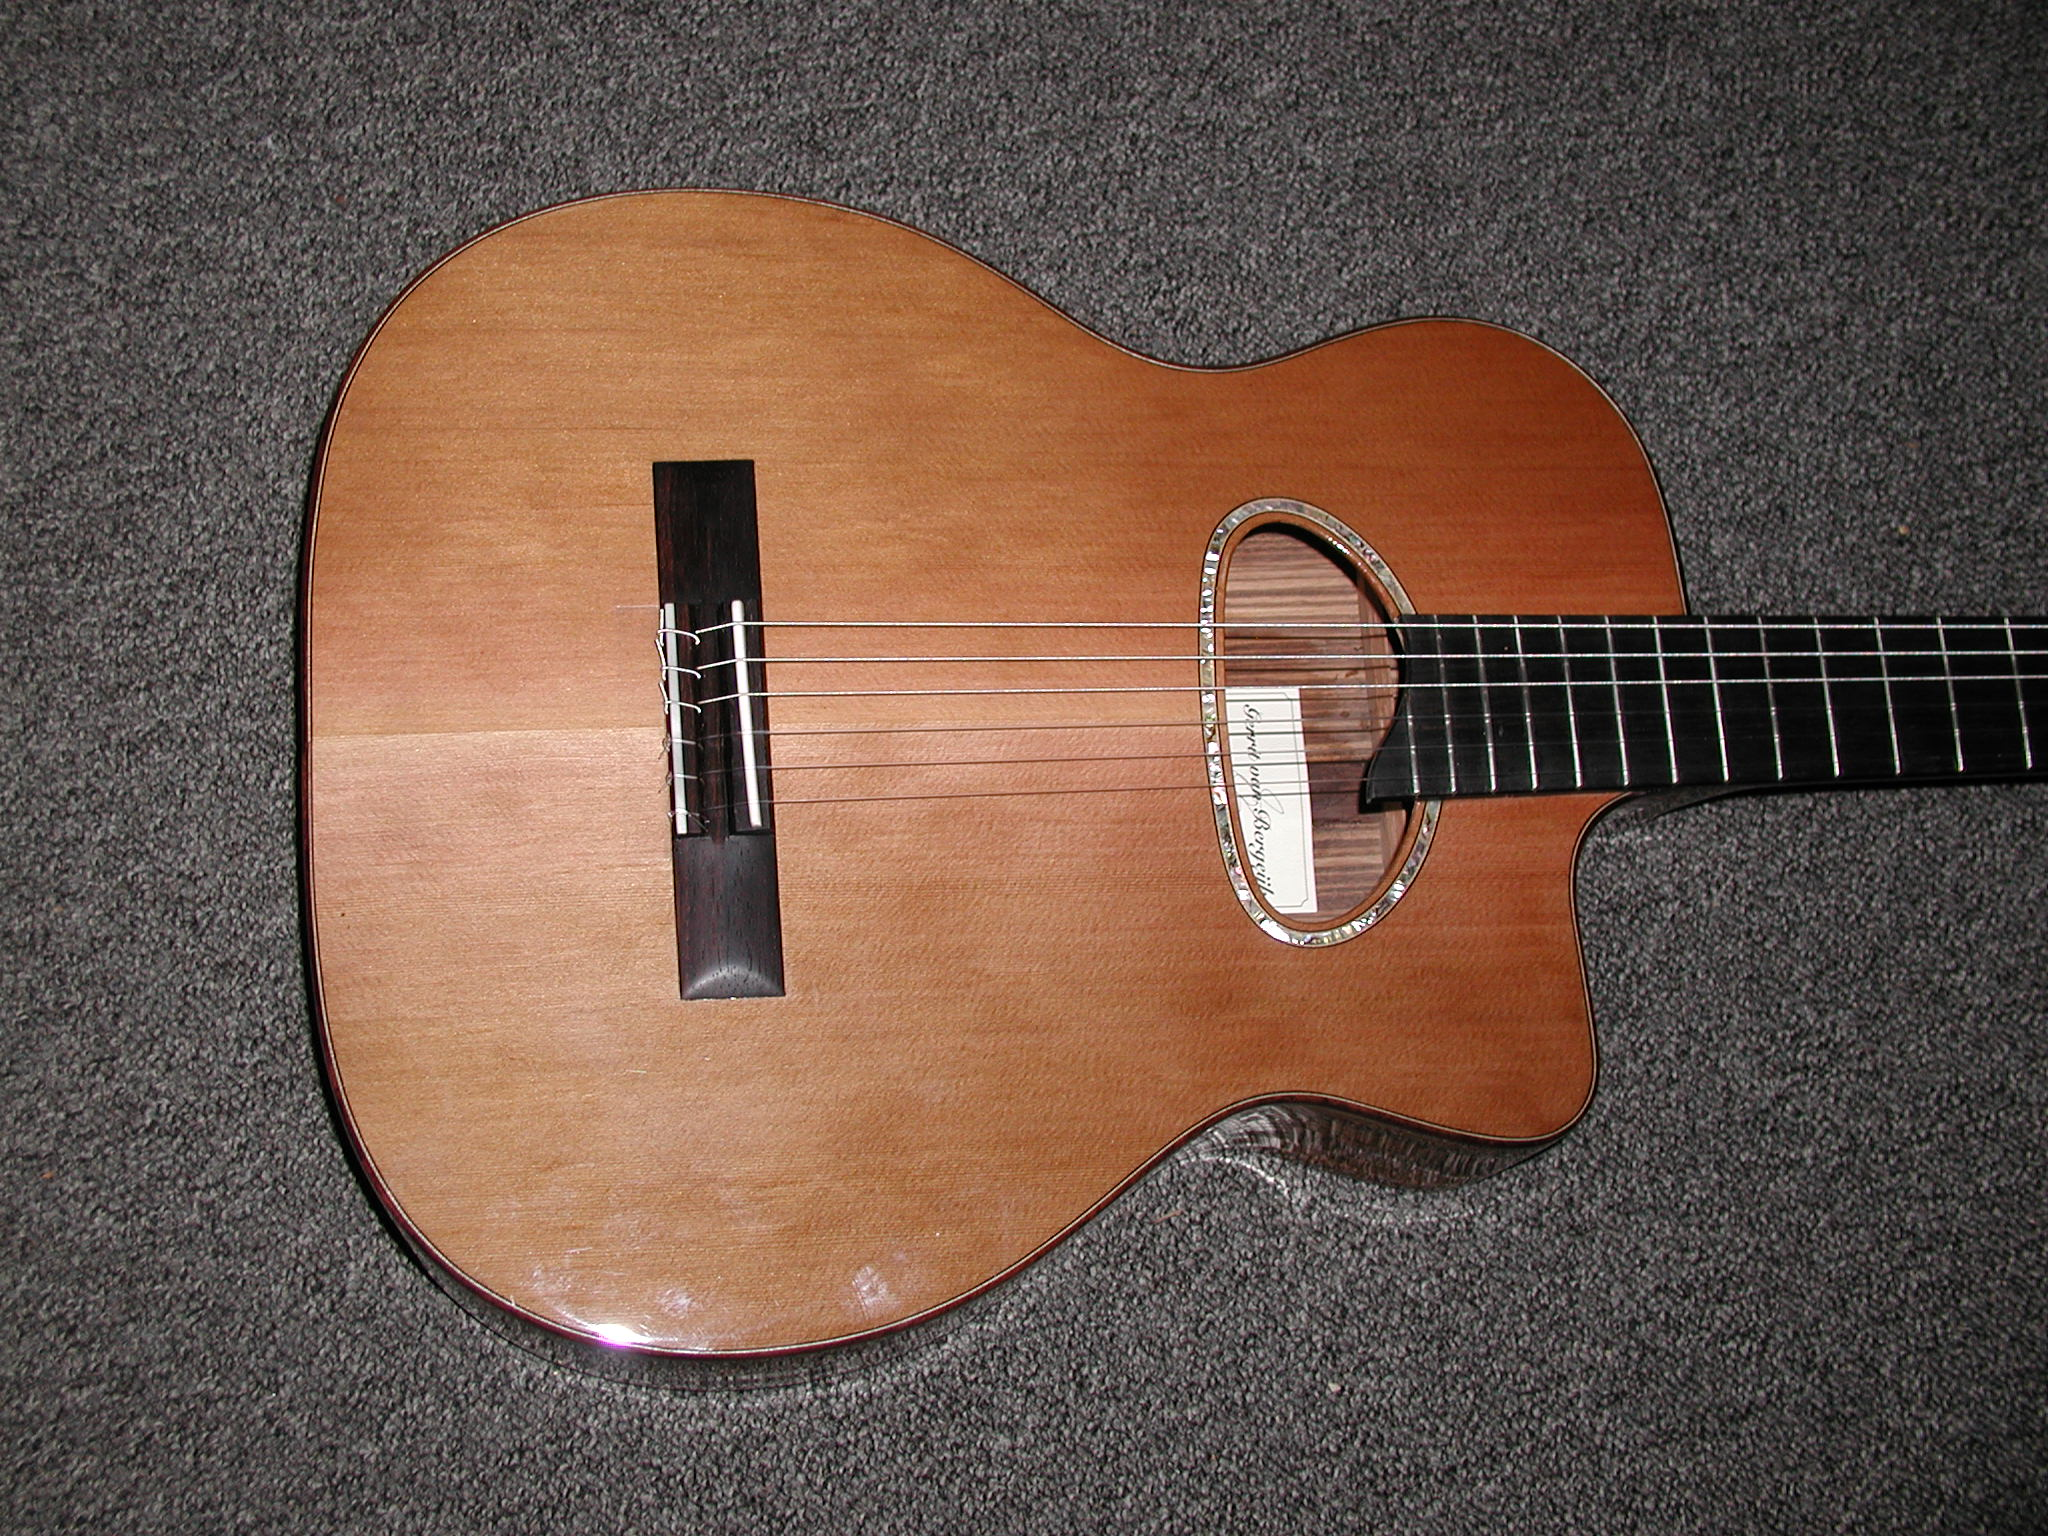 Nylon string  Gipsy guitar